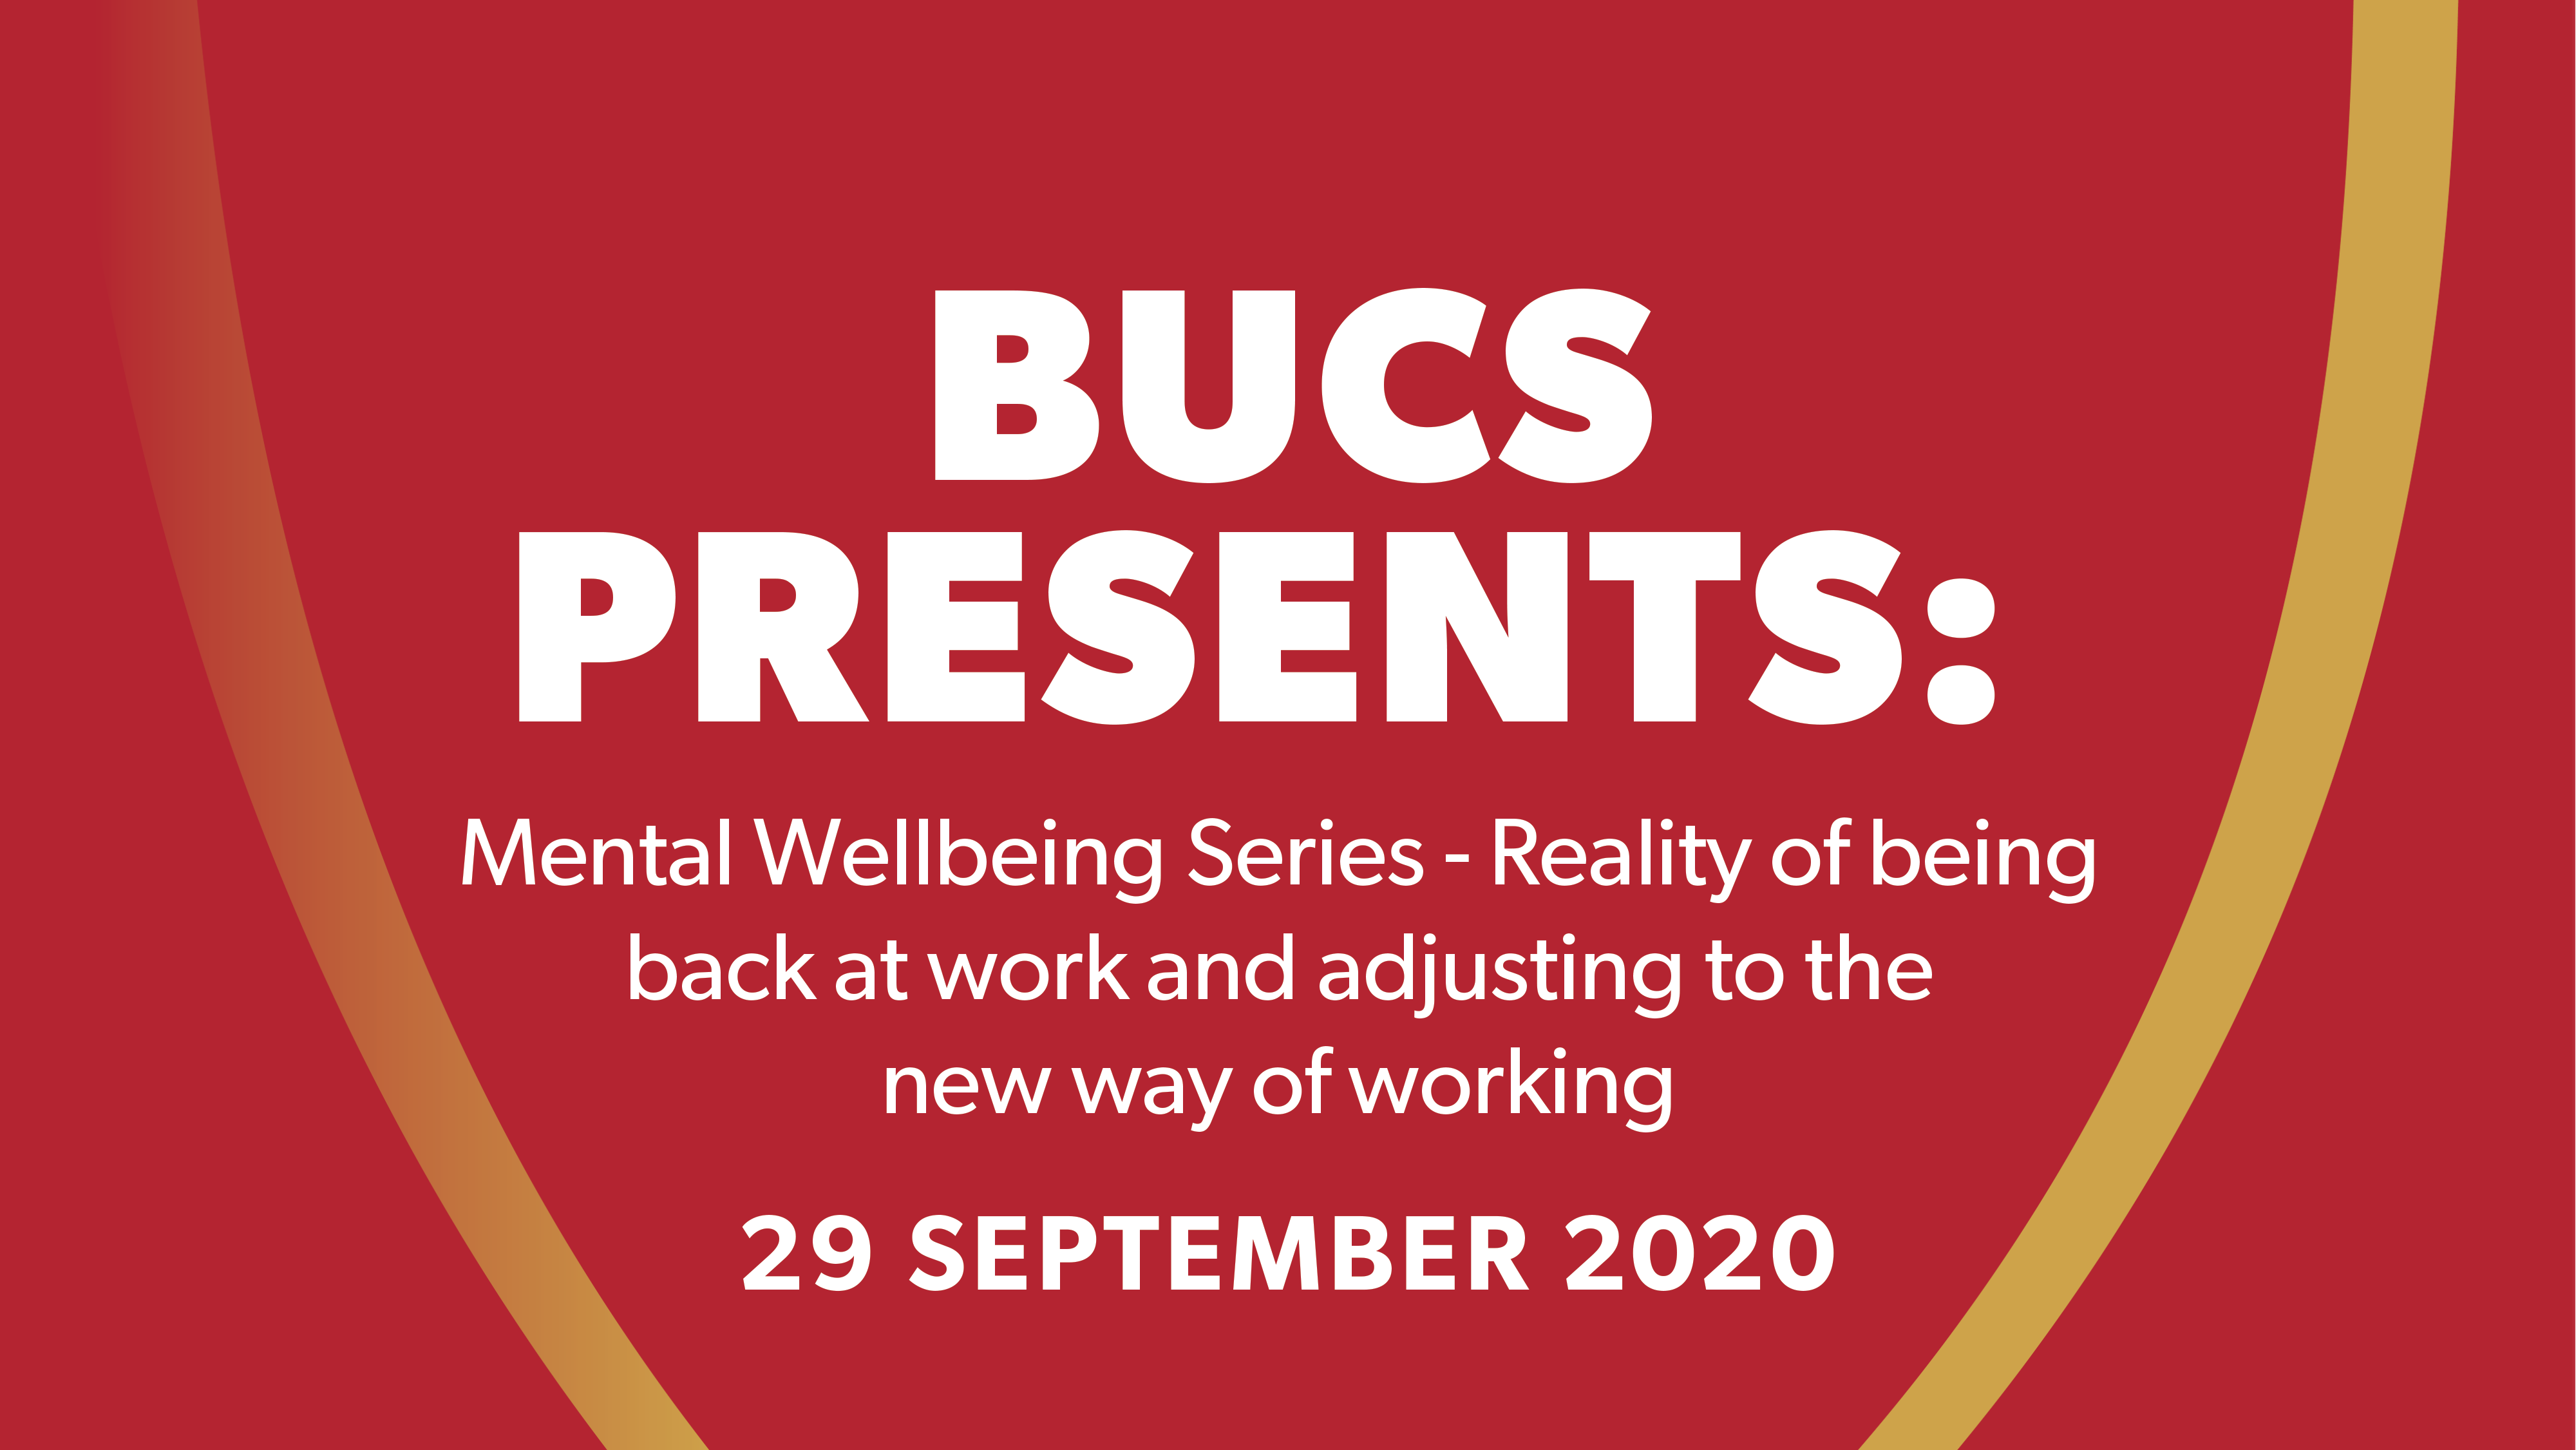 BUCS Mental Wellbeing Series: Session 2